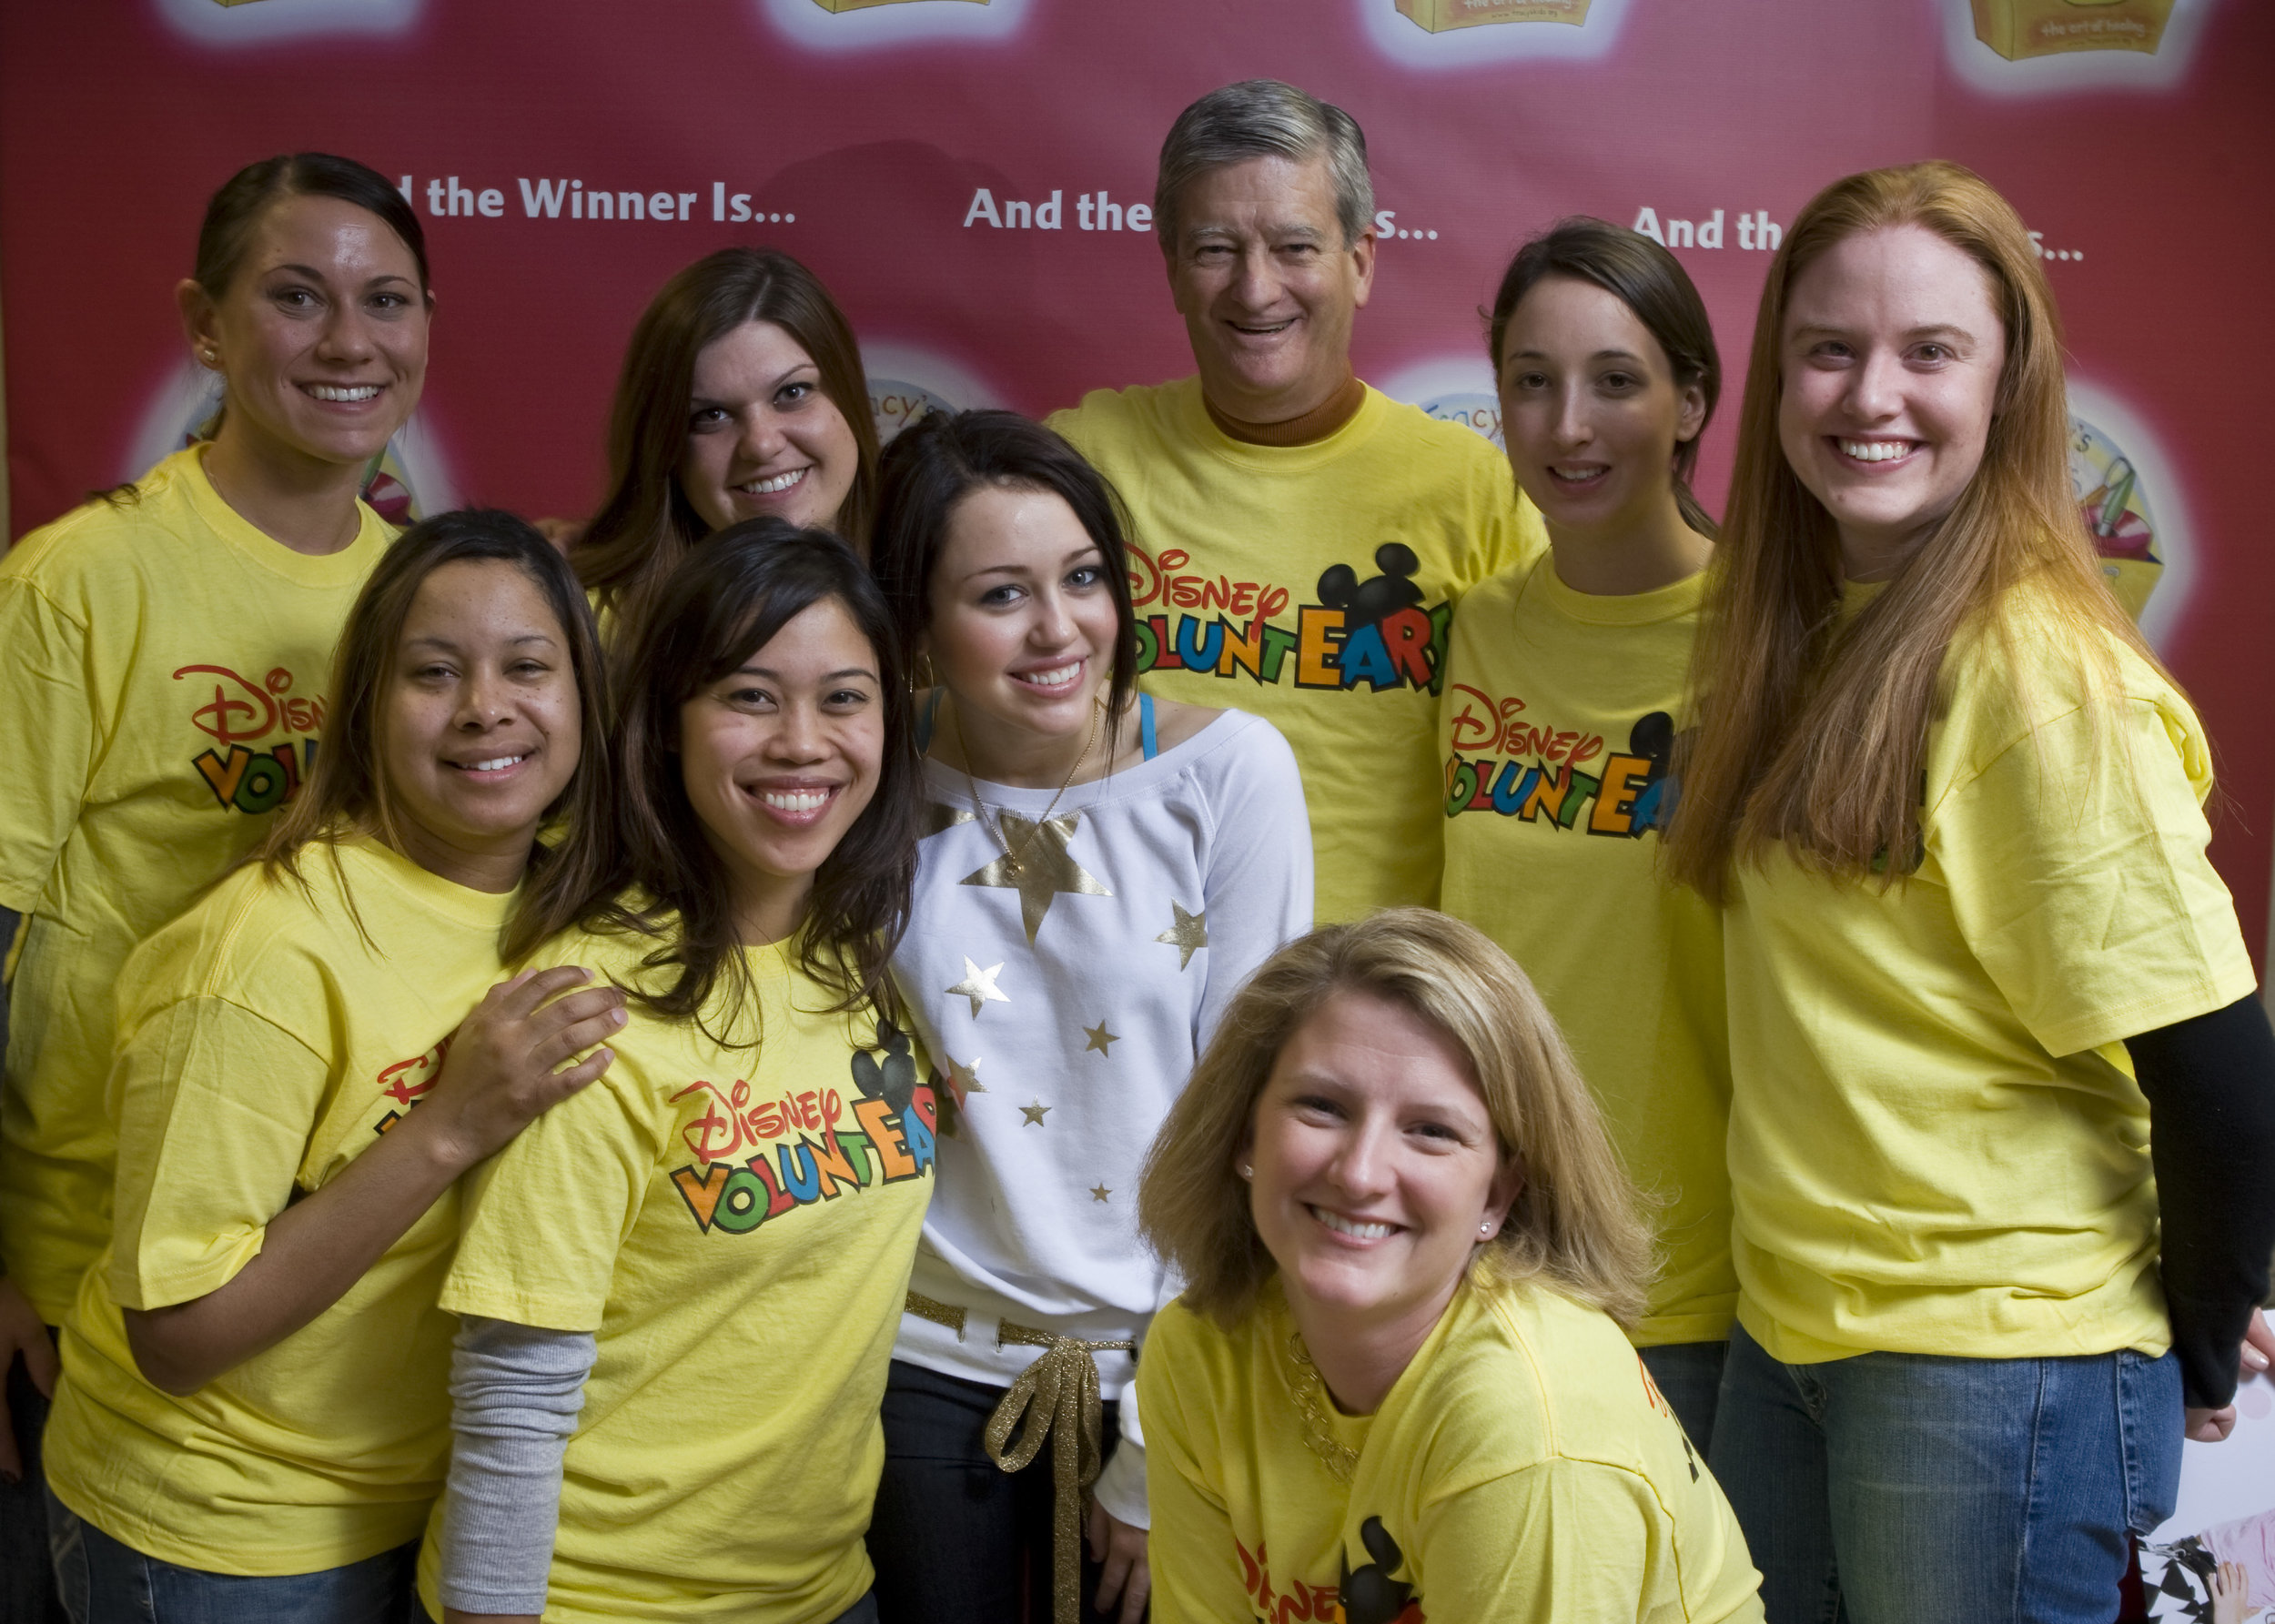 Miley Cyrus joined Disney VoluntEARS to visit patients and hand out toys at various Children's Hospitals.